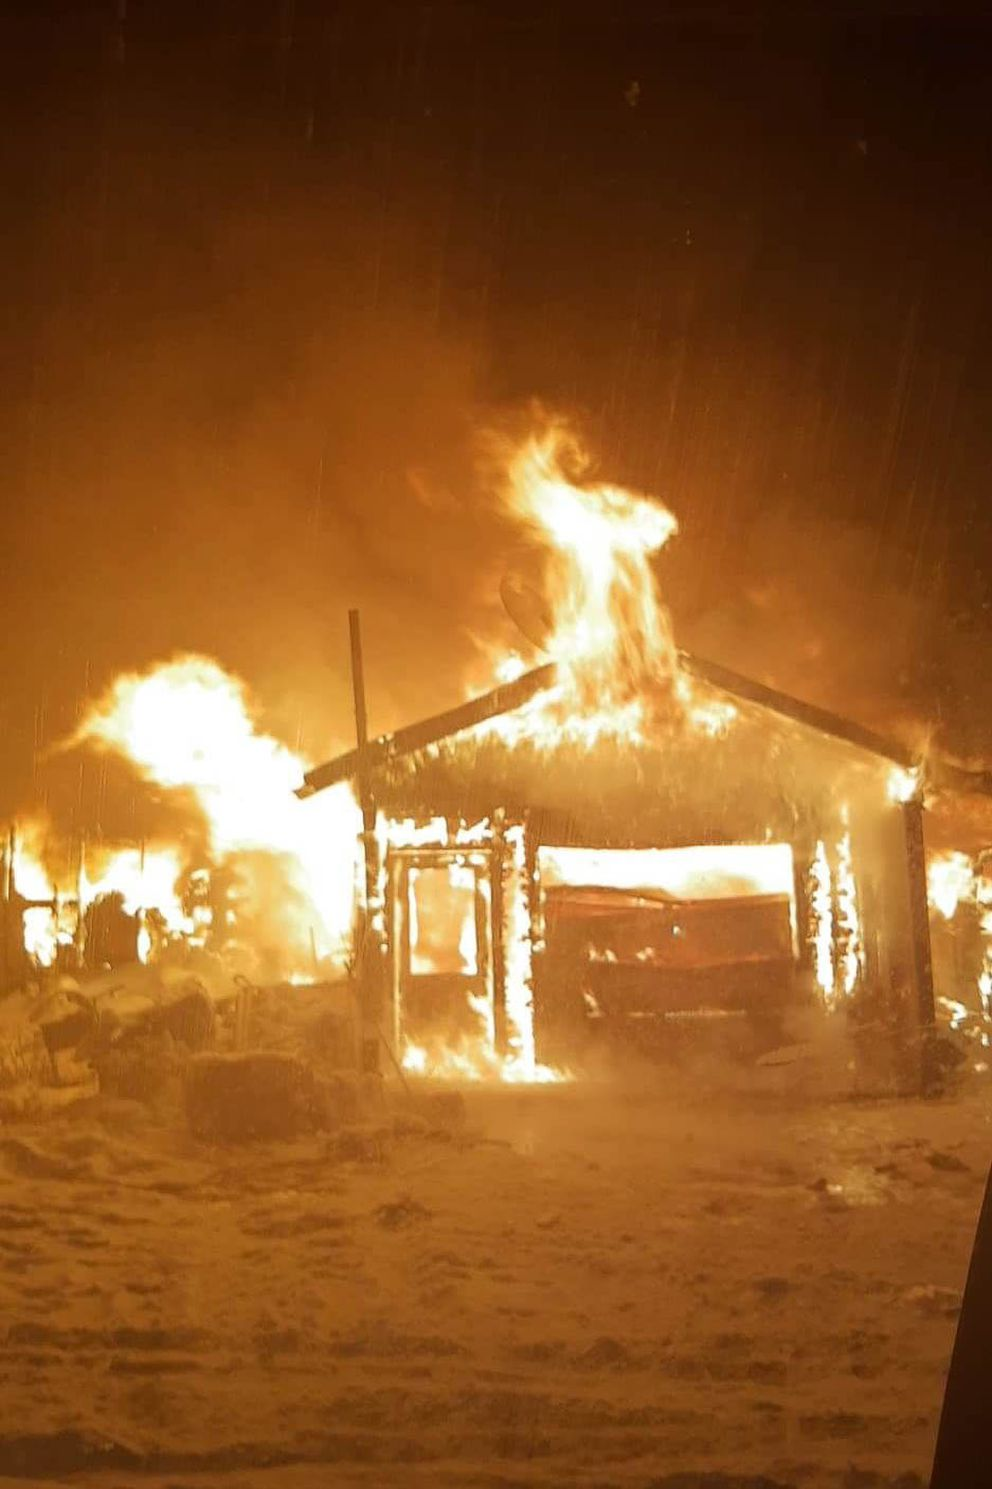 Lauren McIver-O'Hara's house burns on Friday, Dec. 18, 2020 in Big Lake. McIver-O'Hara and her family lost all their possessions and 17 pets. (Courtesy Lauren McIver-O'Hara)